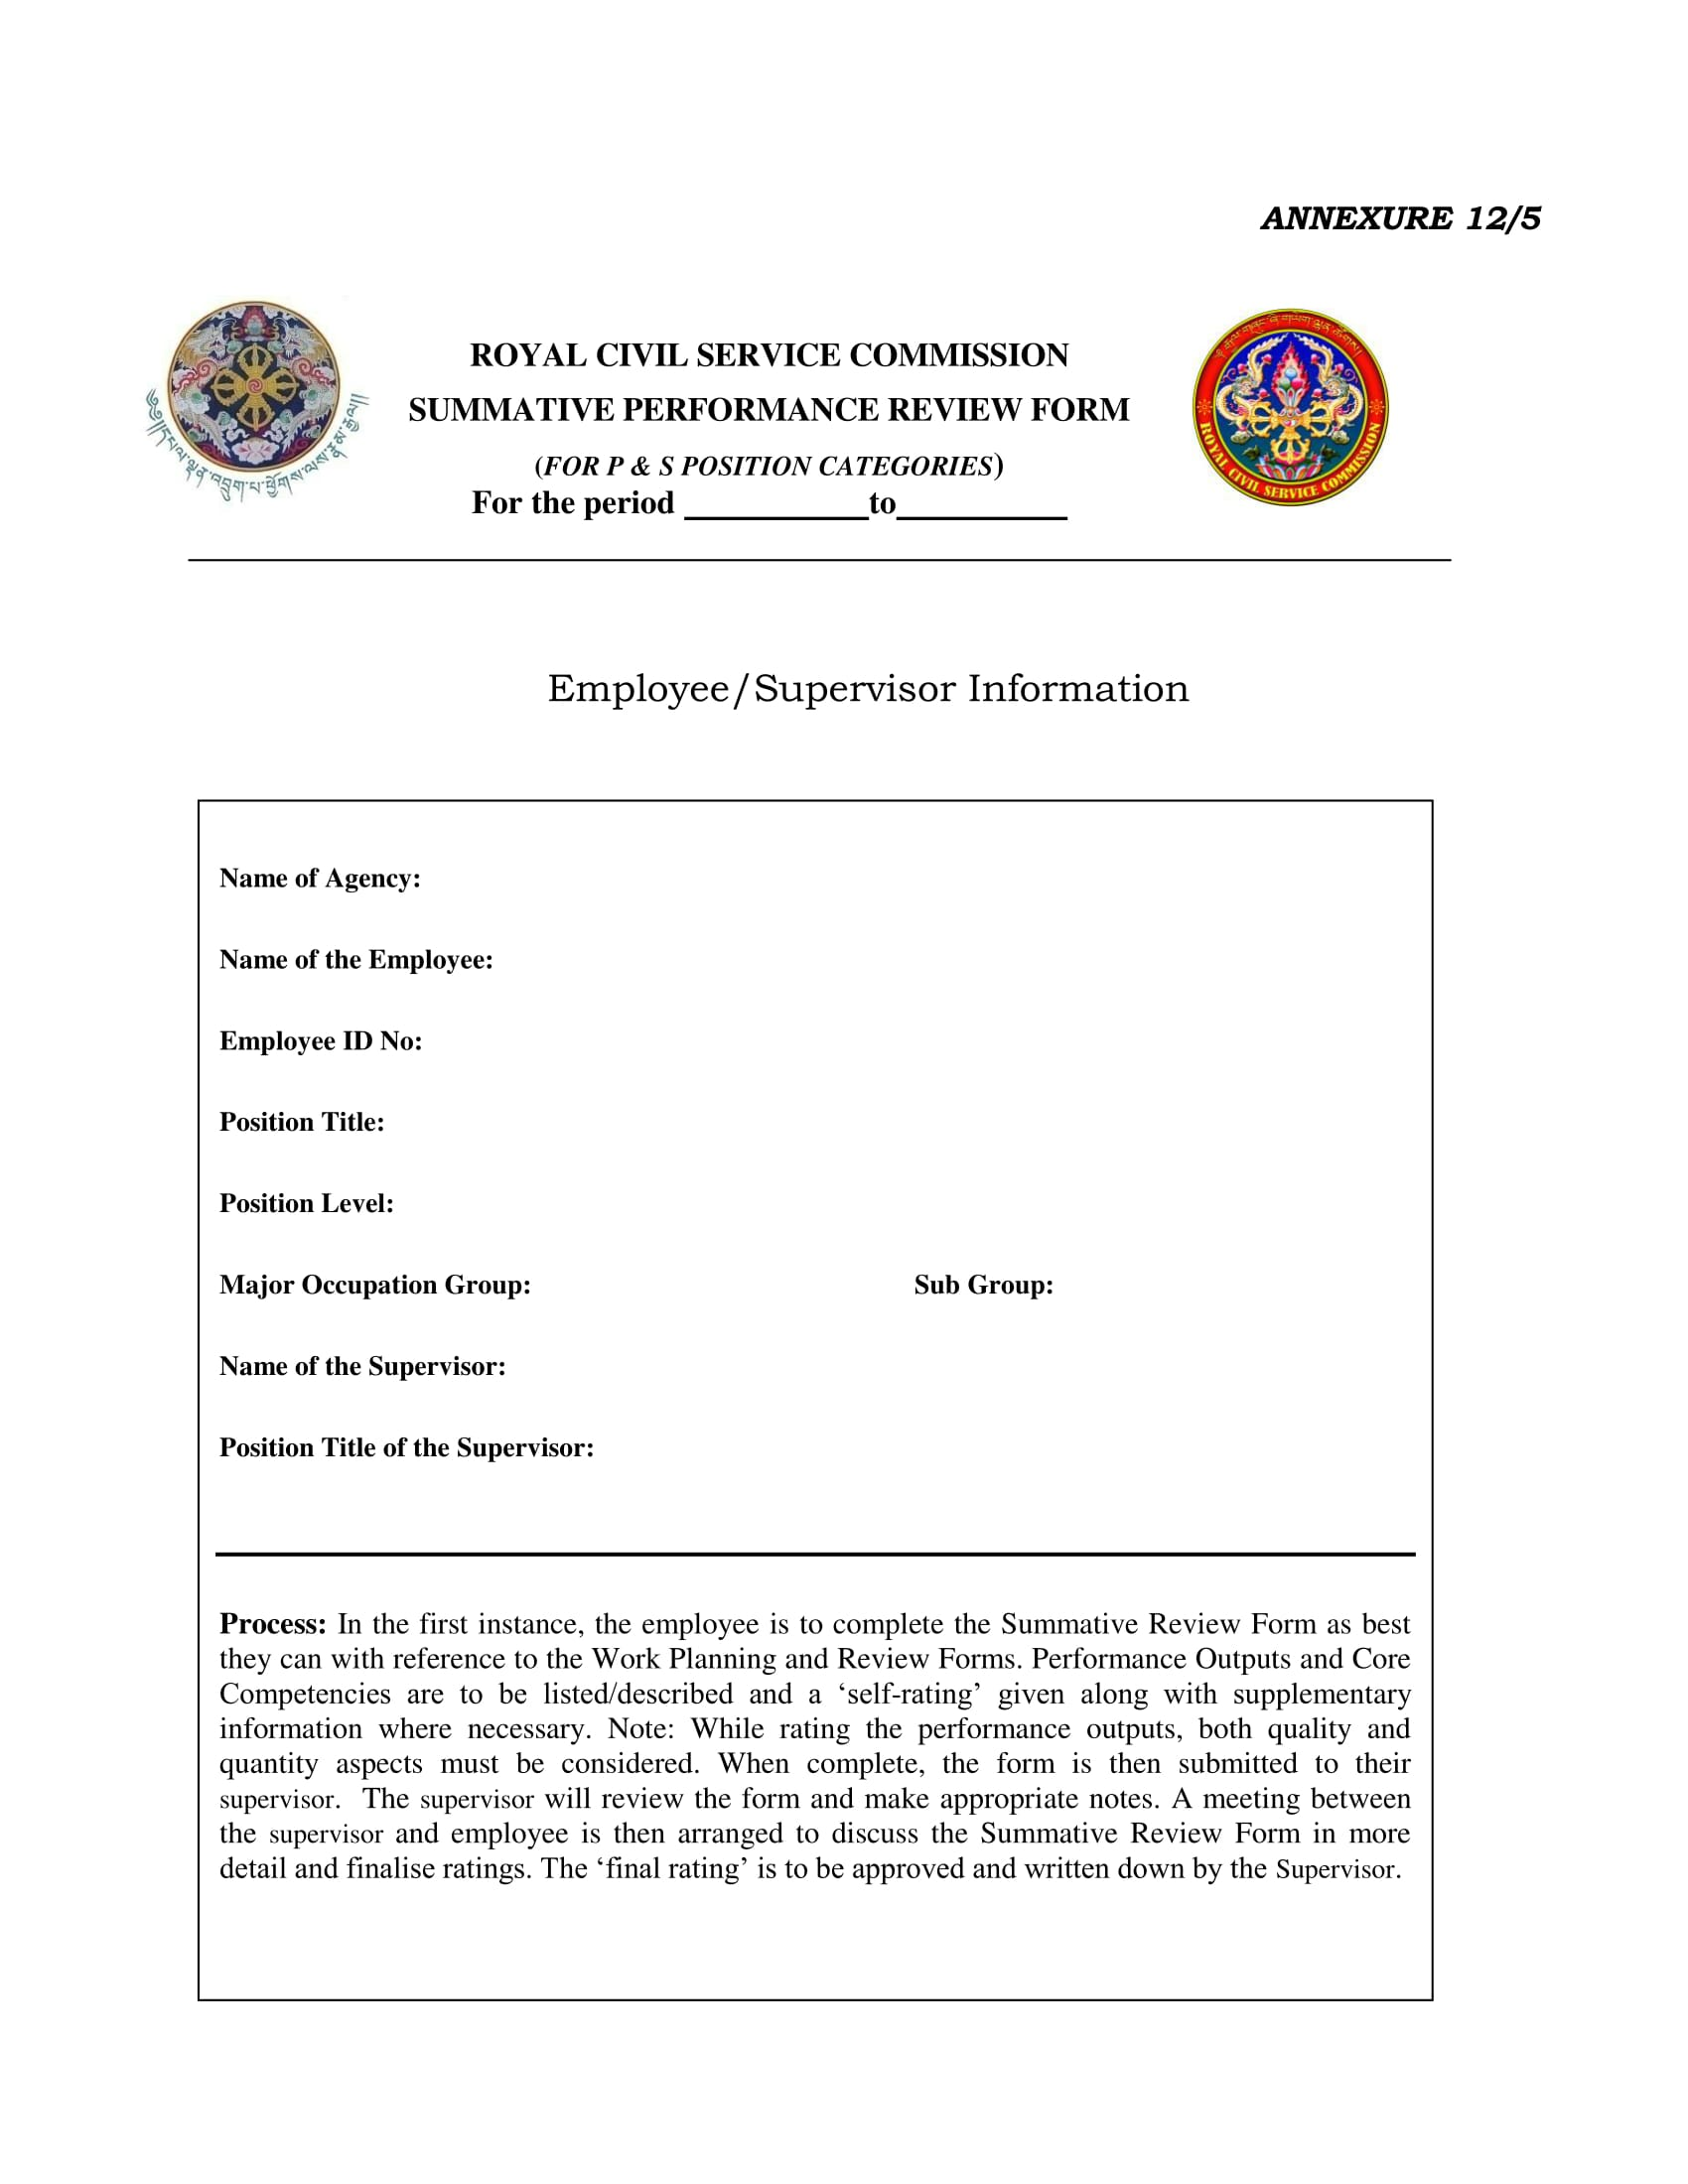 summative employee performance review form 1